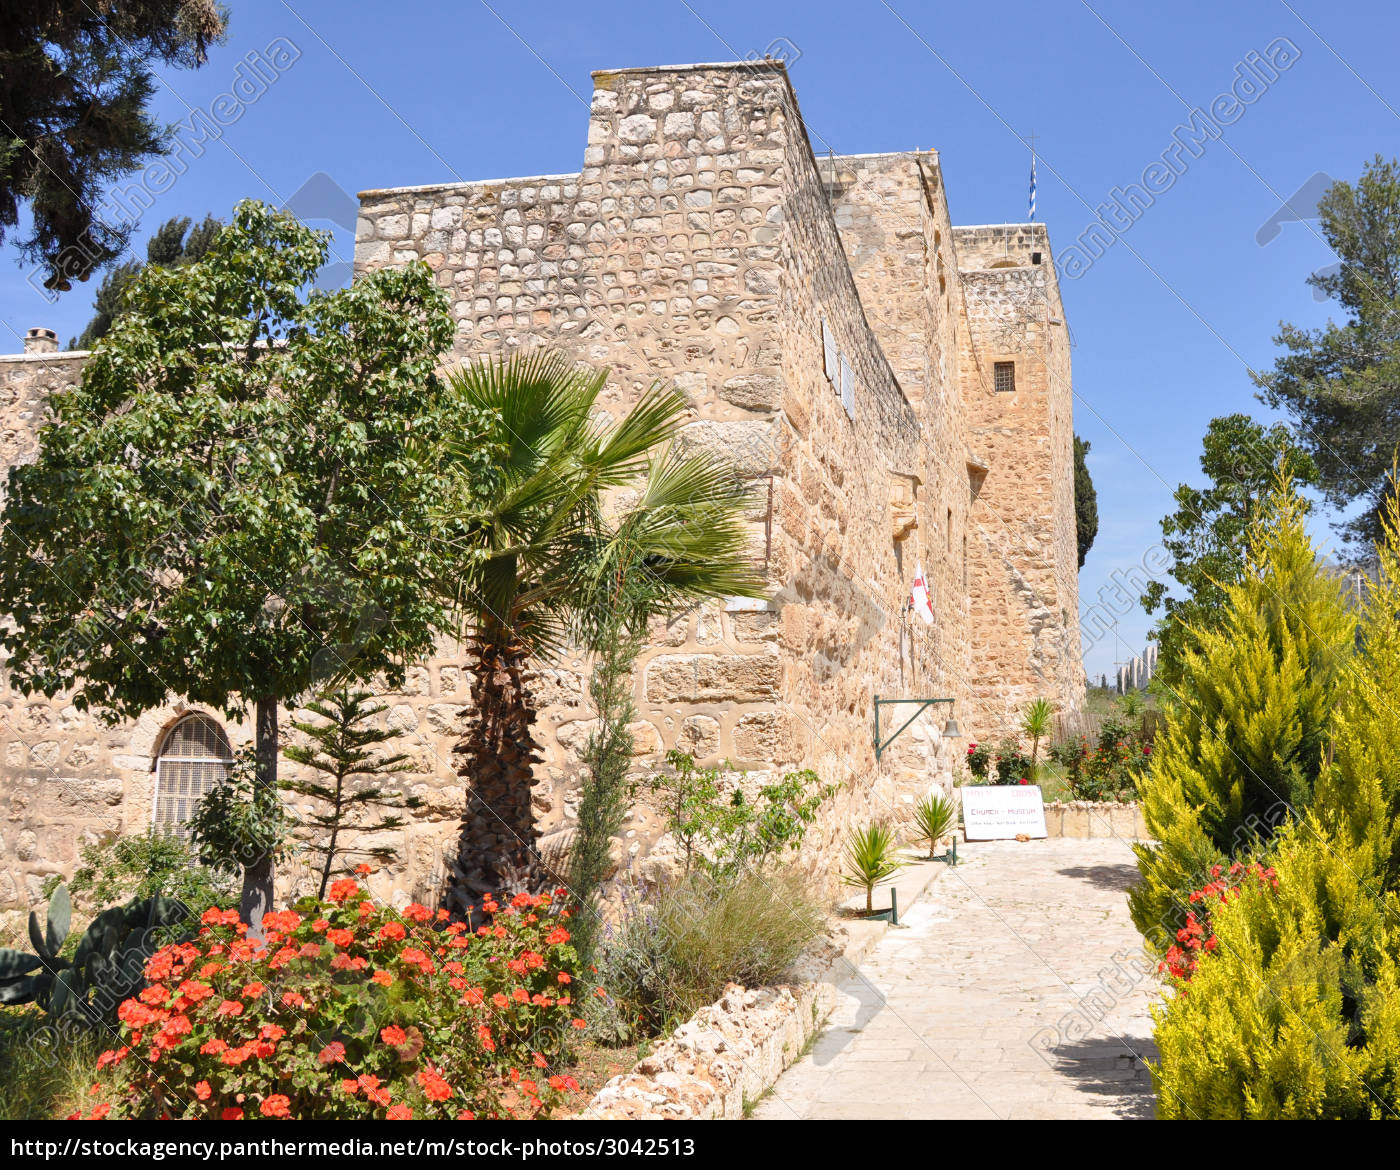 monastery, of, the, cross., jerusalem. - 3042513